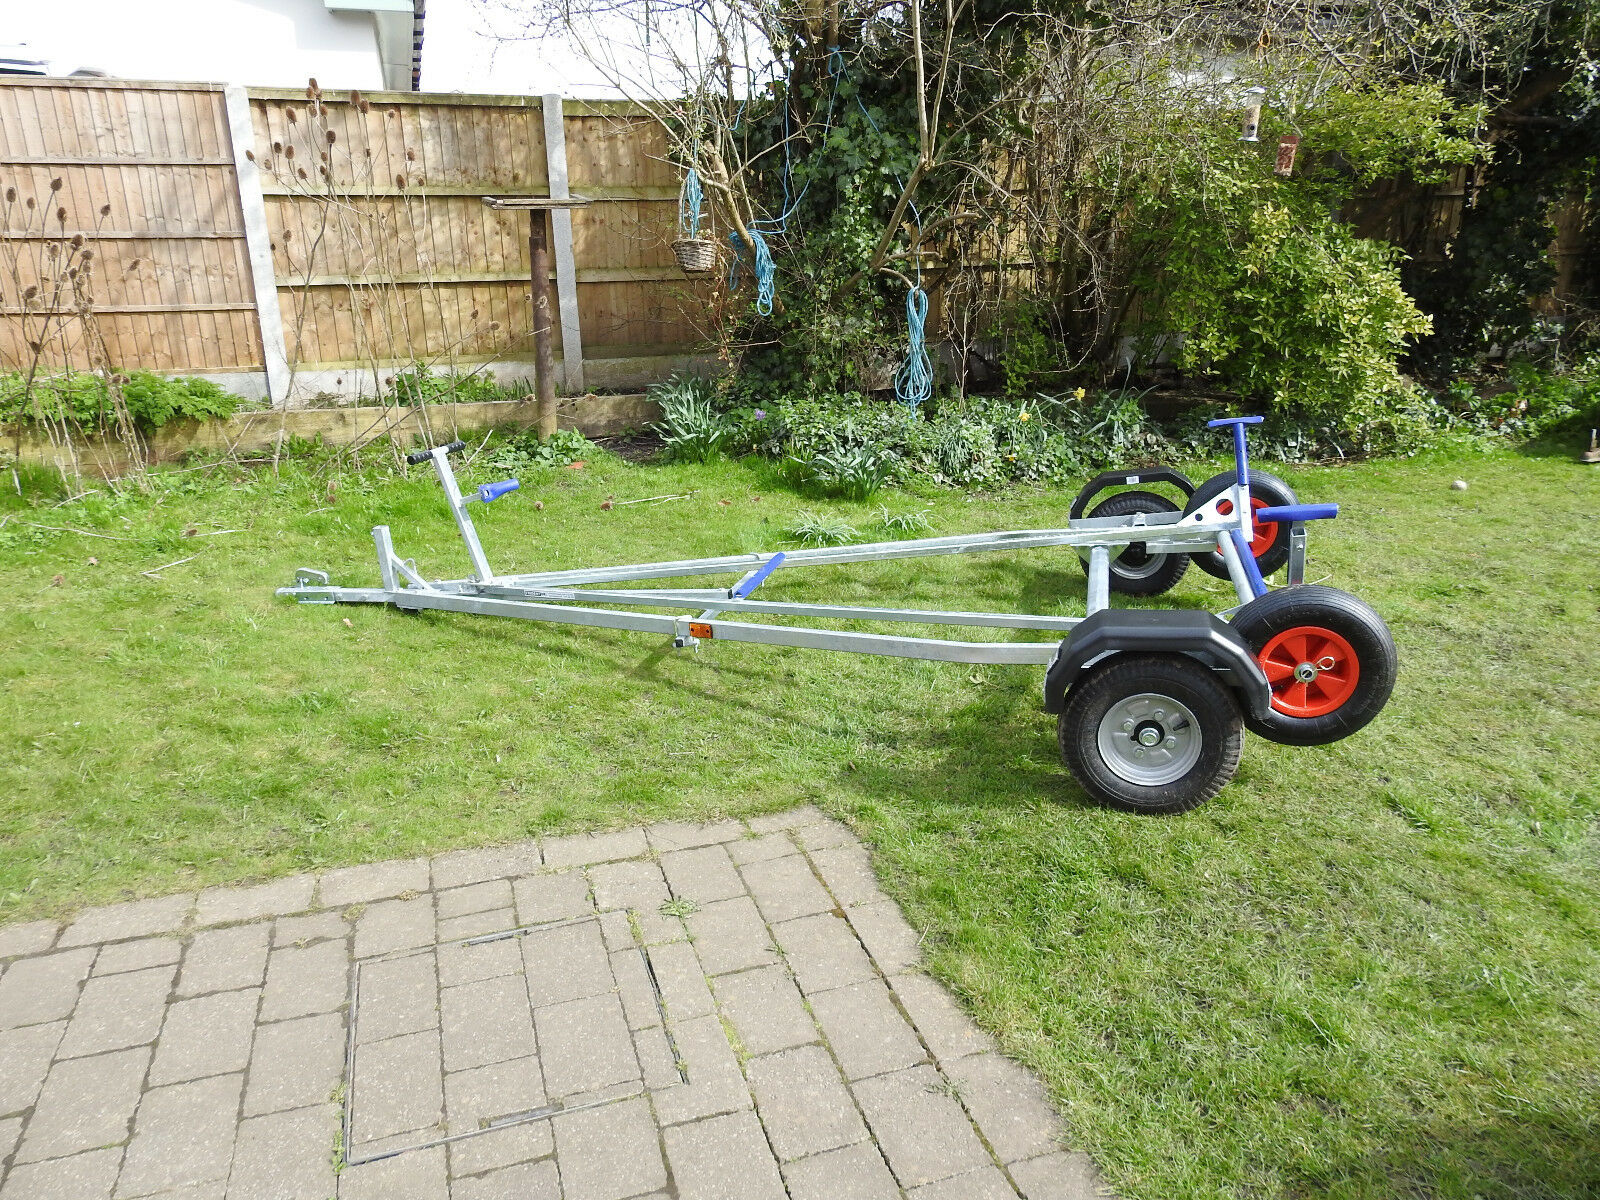 Laser 1 Combination road trailer. New. Trident